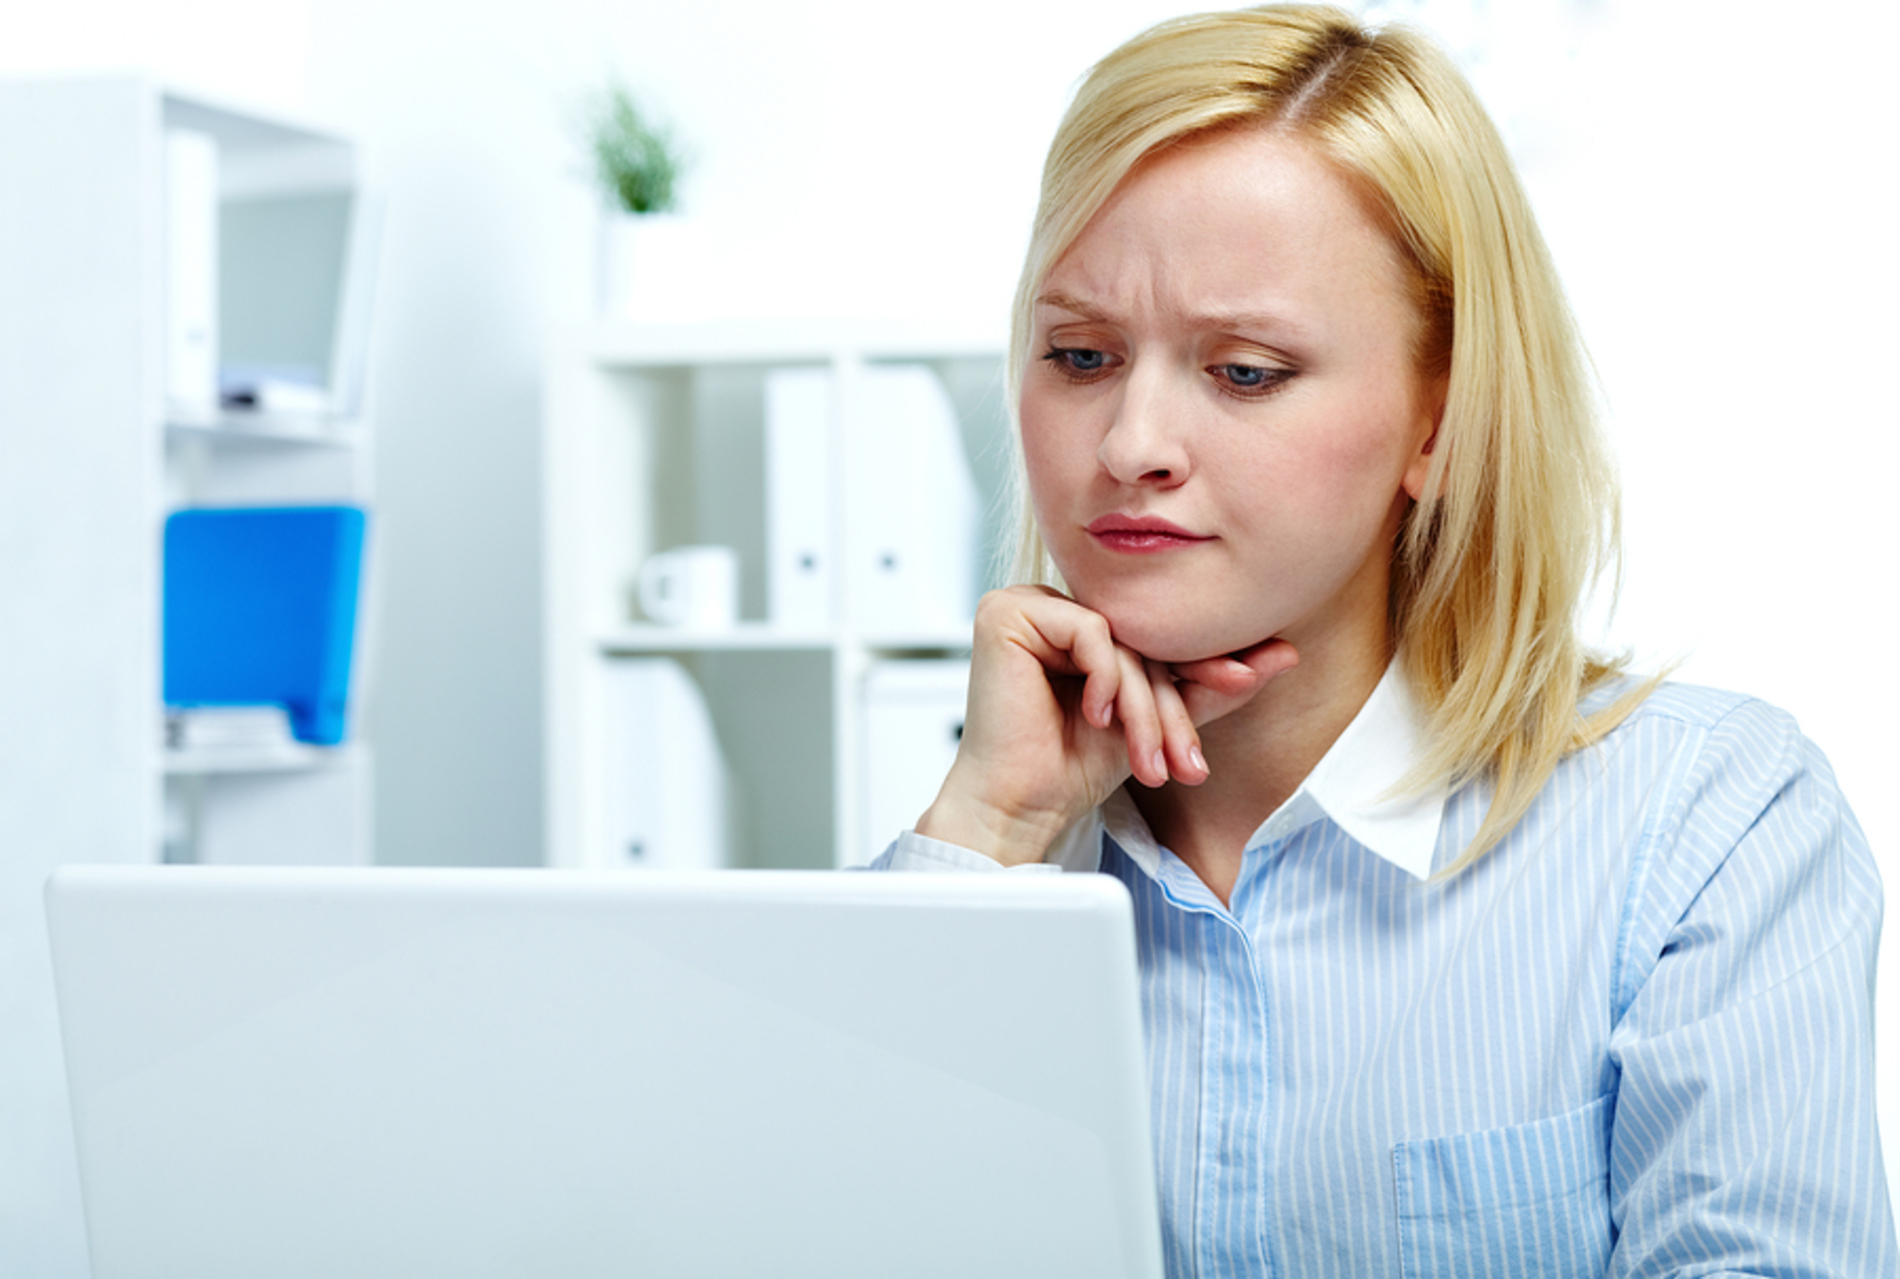 Woman looking worried while staring at her computer screen.